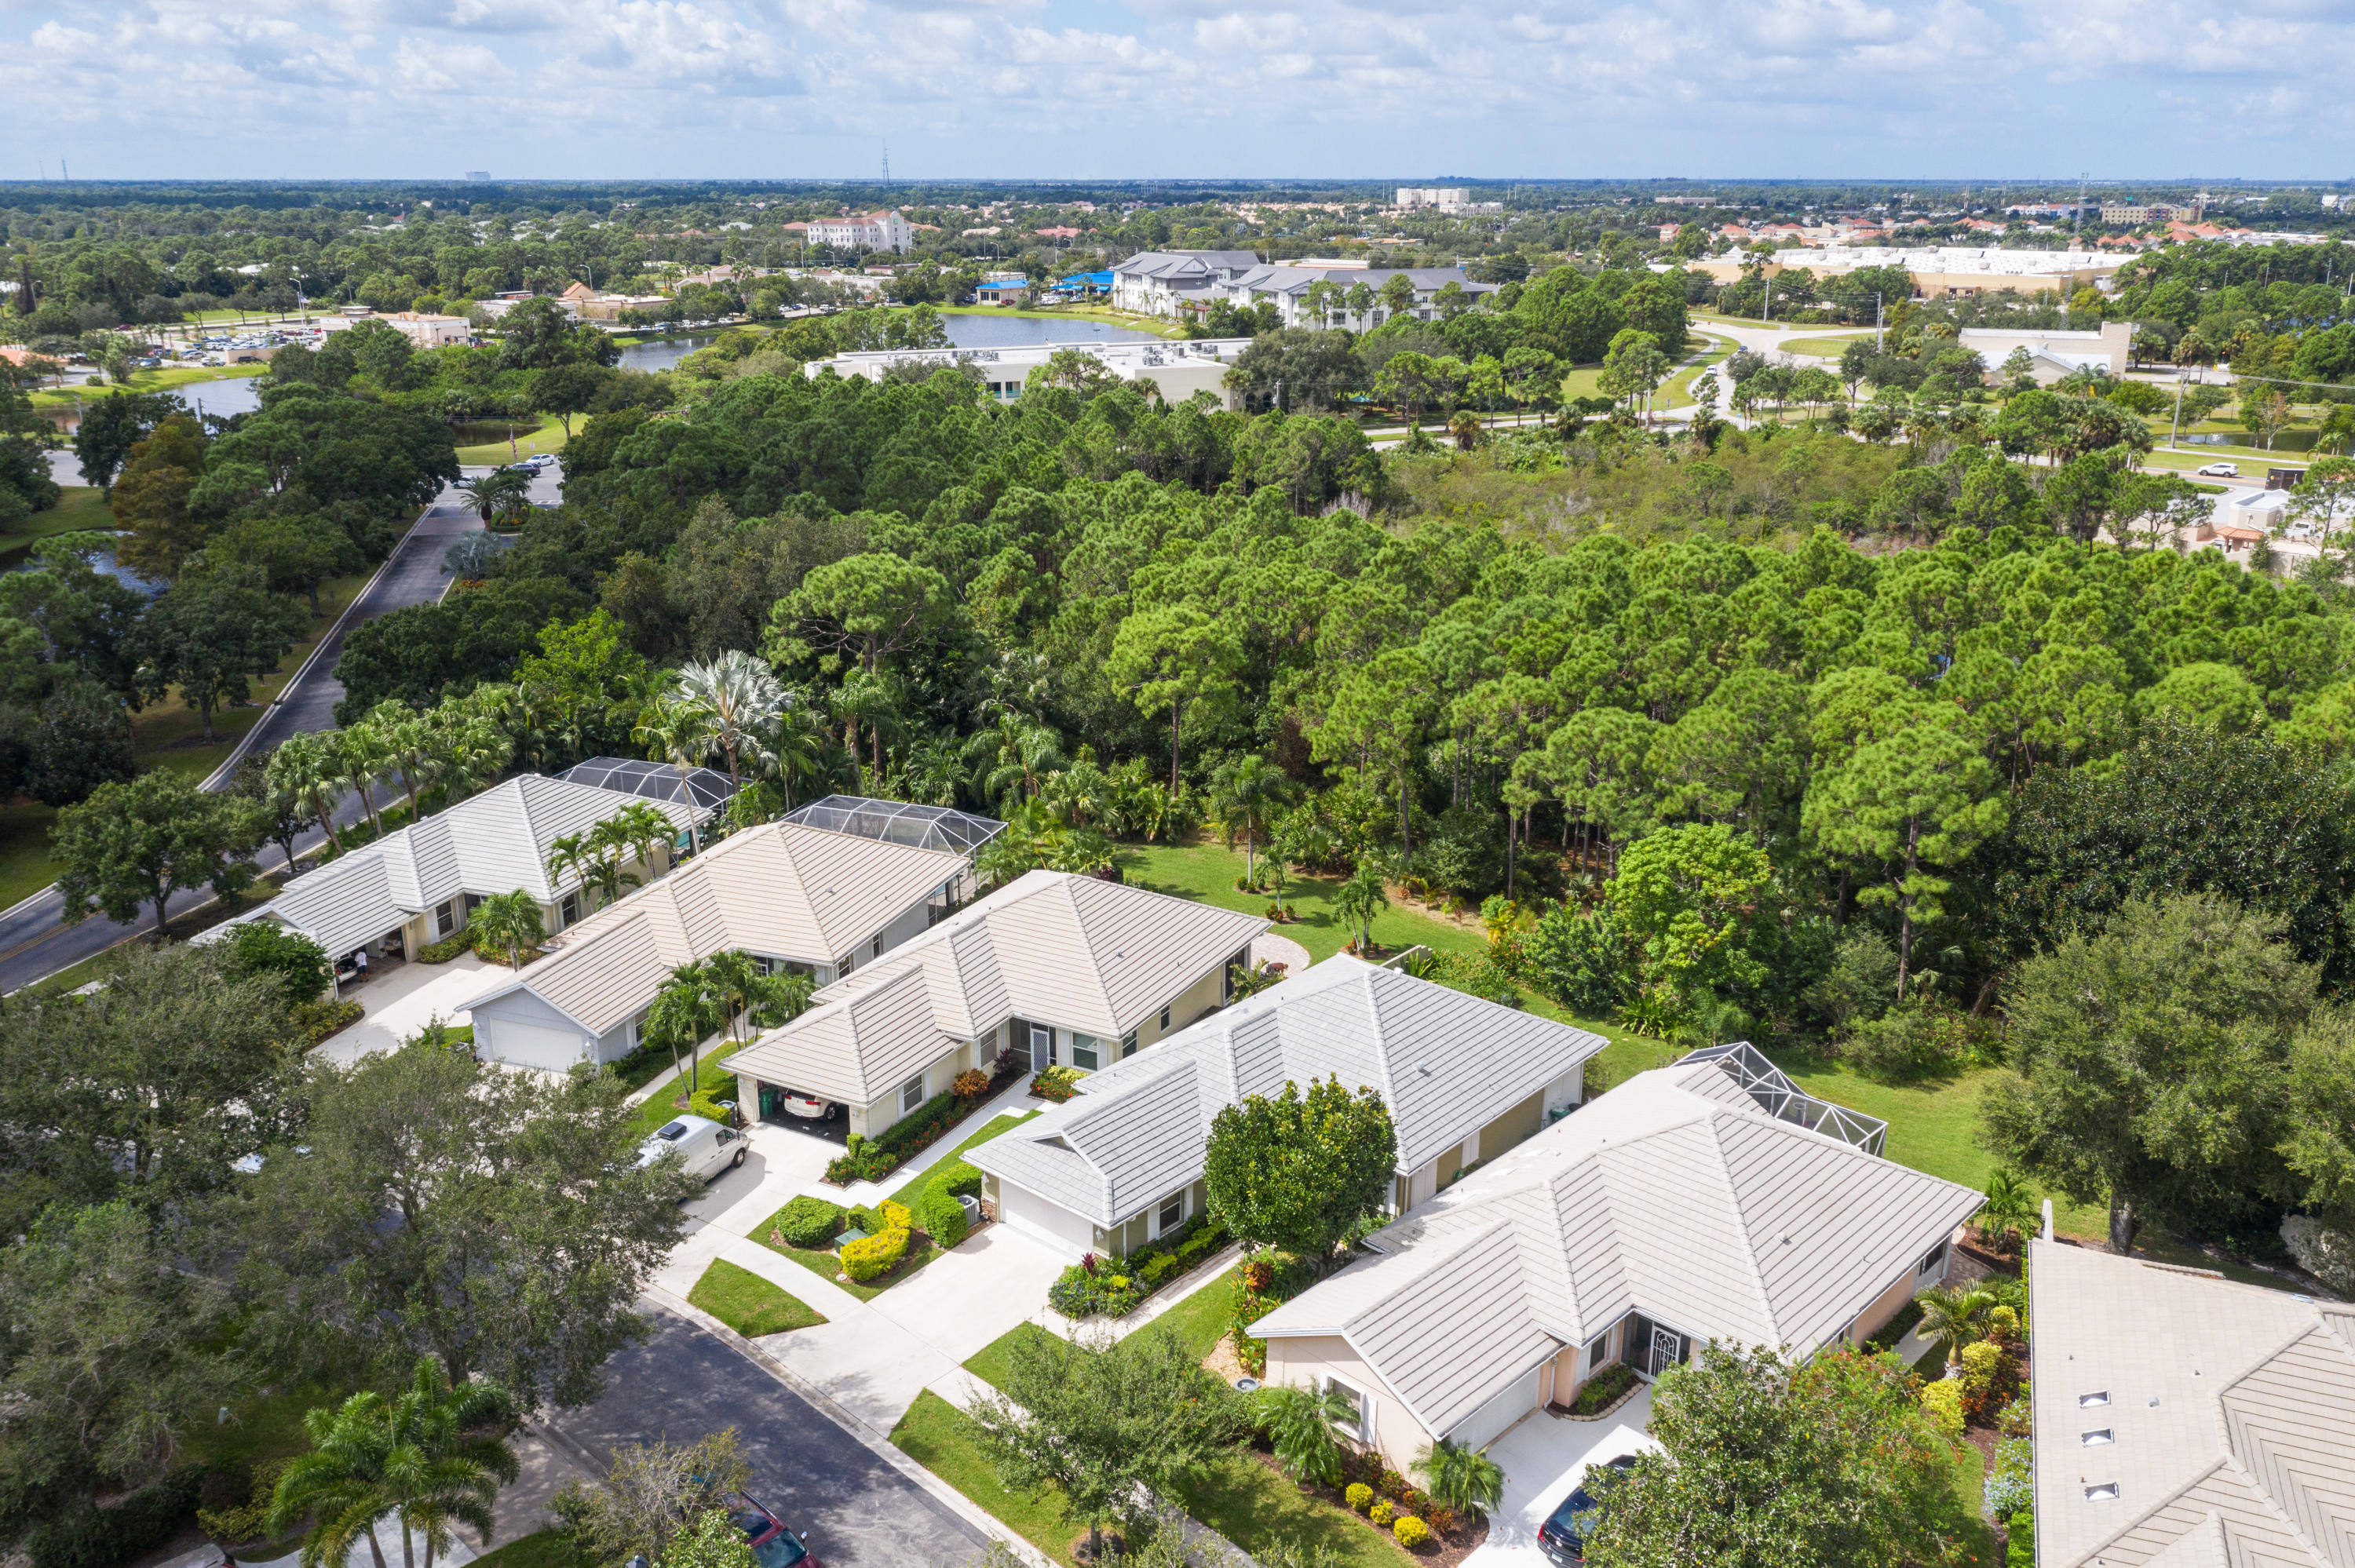 LAKES AT ST LUCIE WEST-PLAT 22- LOT 4 (OR 3042-83; 3421-2400)